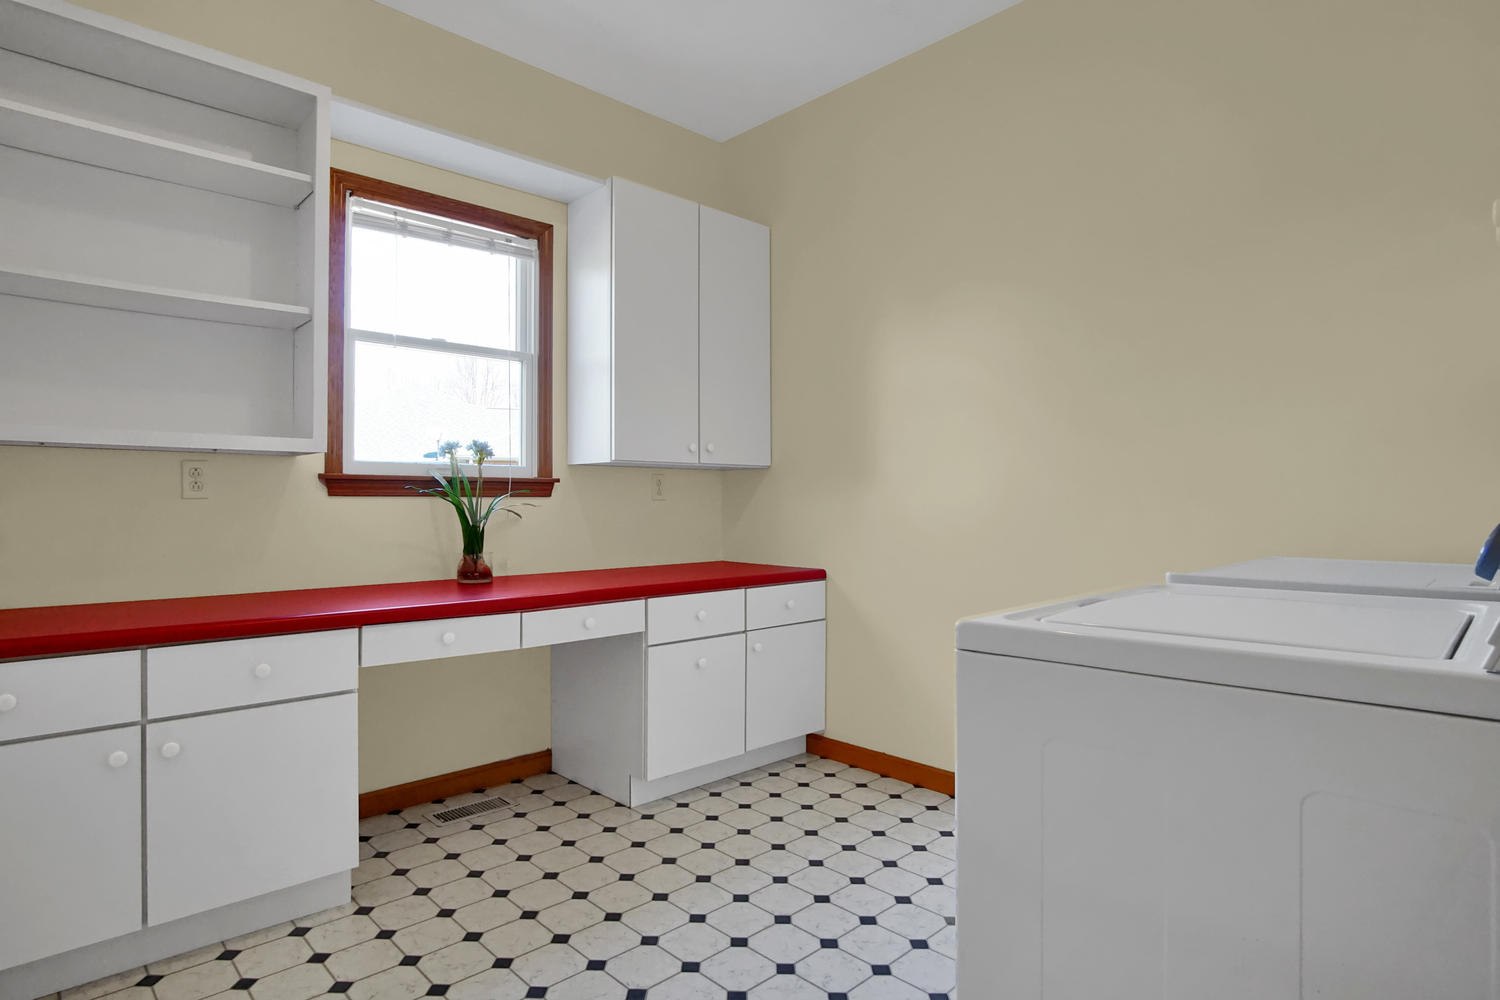 123 McKendree Park - Laundry Room